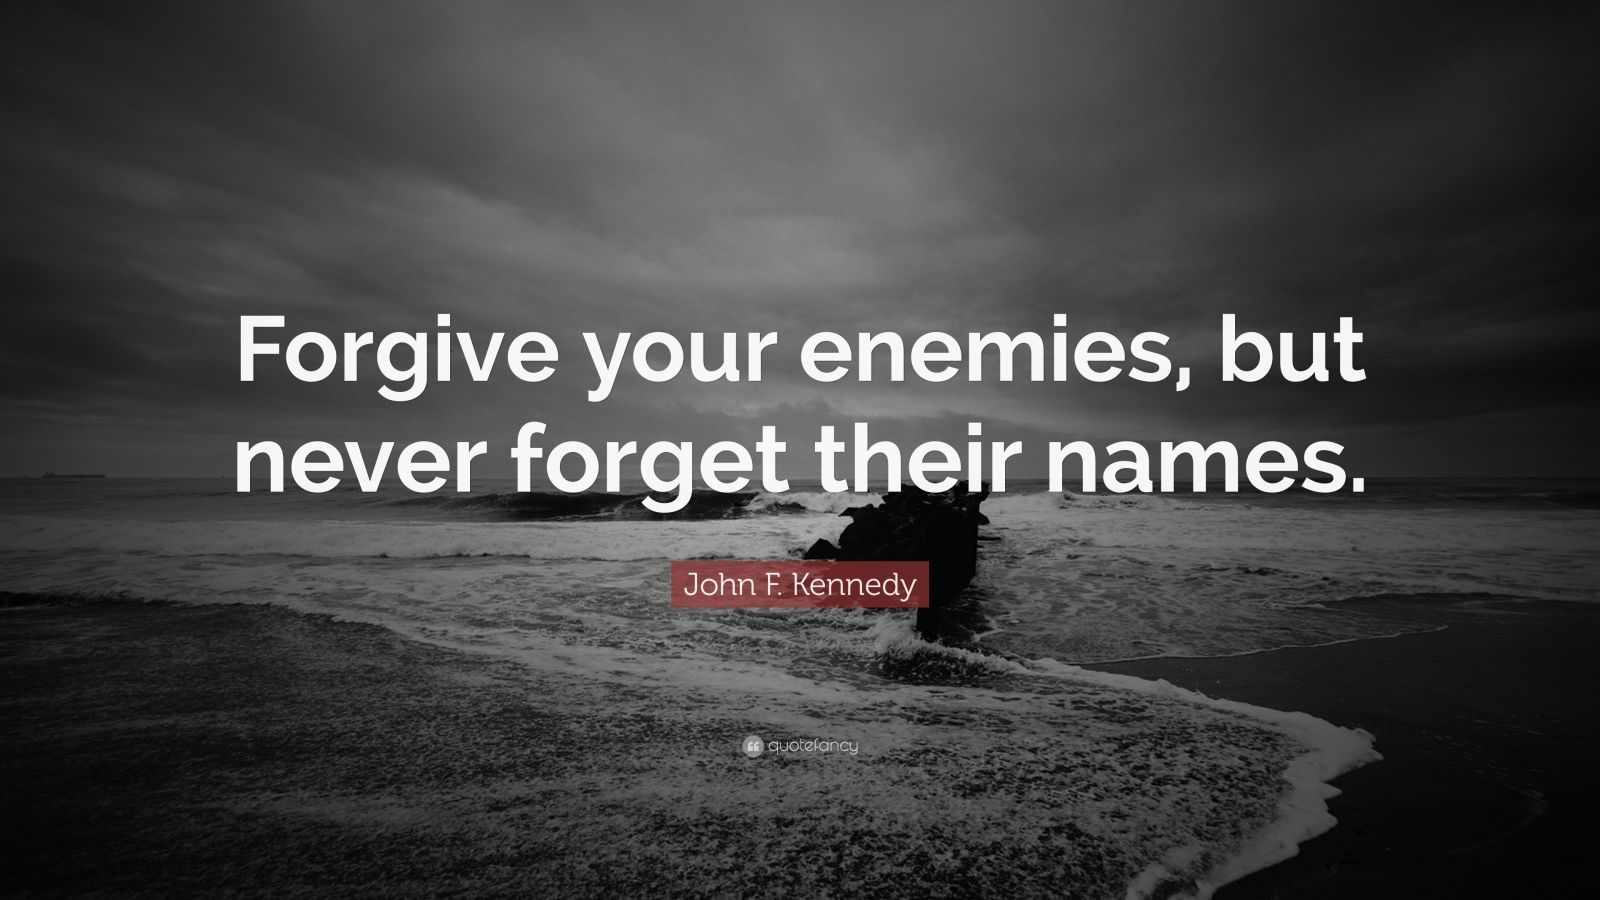 john f kennedy quote wallpapers - photo #9